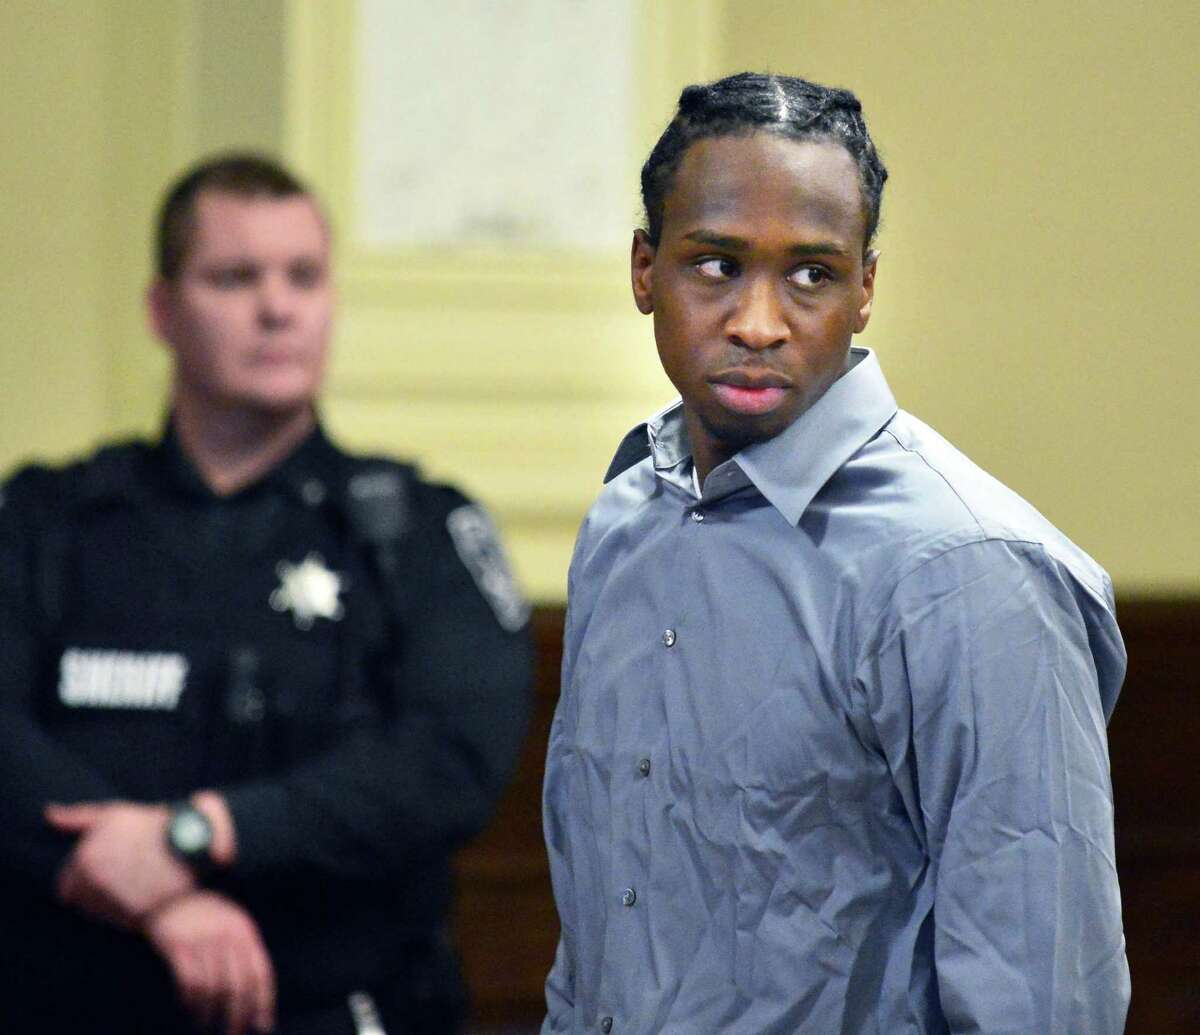 Quintril Clark, 23, of Troy appears in court at the beginning of his trial in the killing of Sha-Kim Miller on Tuesday Dec. 3, 2013, at the Rensselaer County Courthouse in Troy, NY. (John Carl D'Annibale / Times Union)